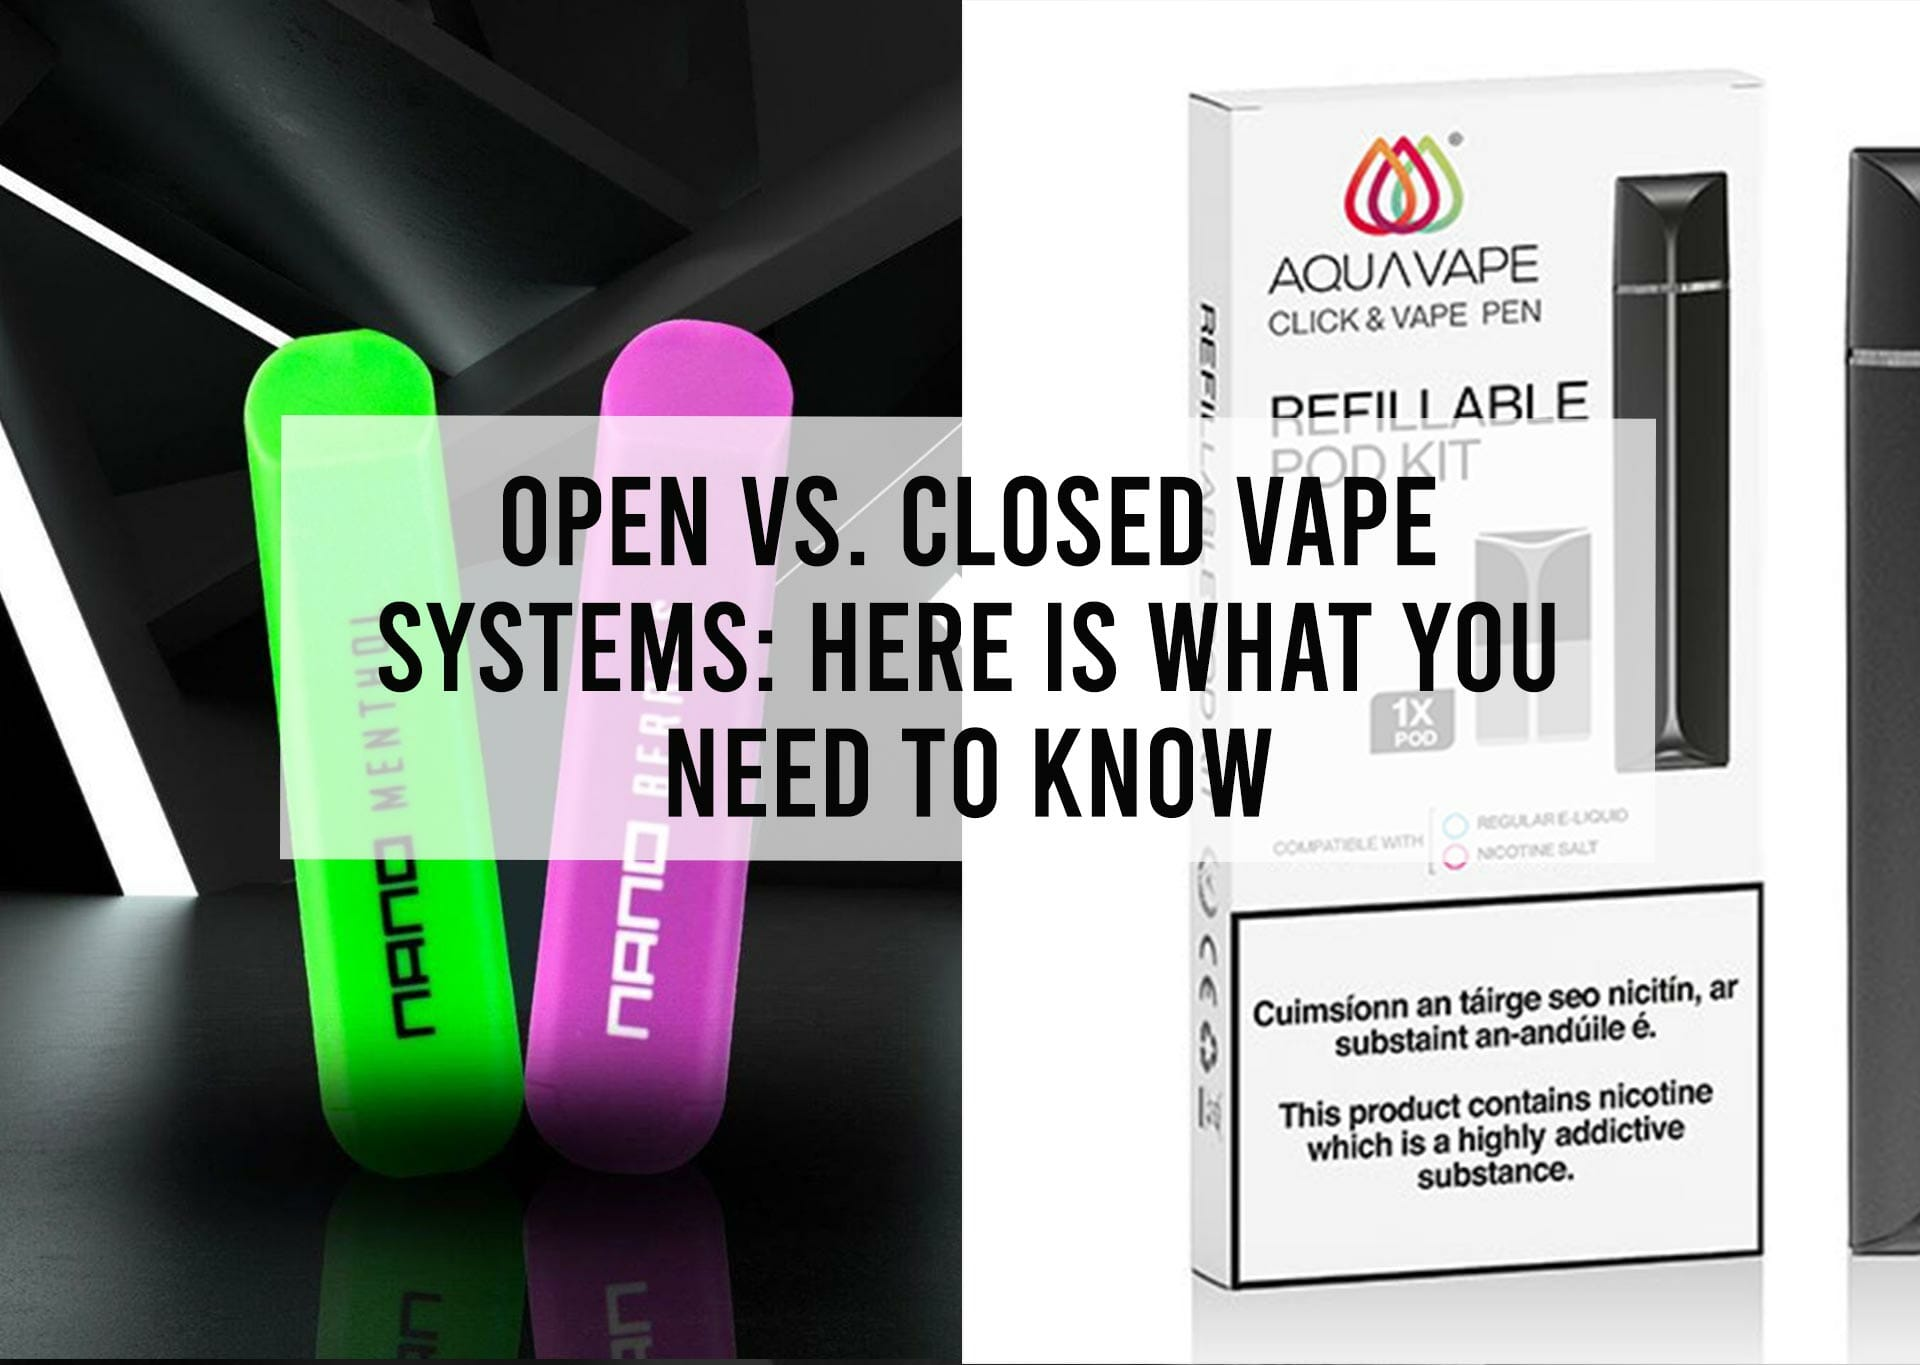 Open vs. Closed Vape Systems: Here is What You Need to Know - AquaVape